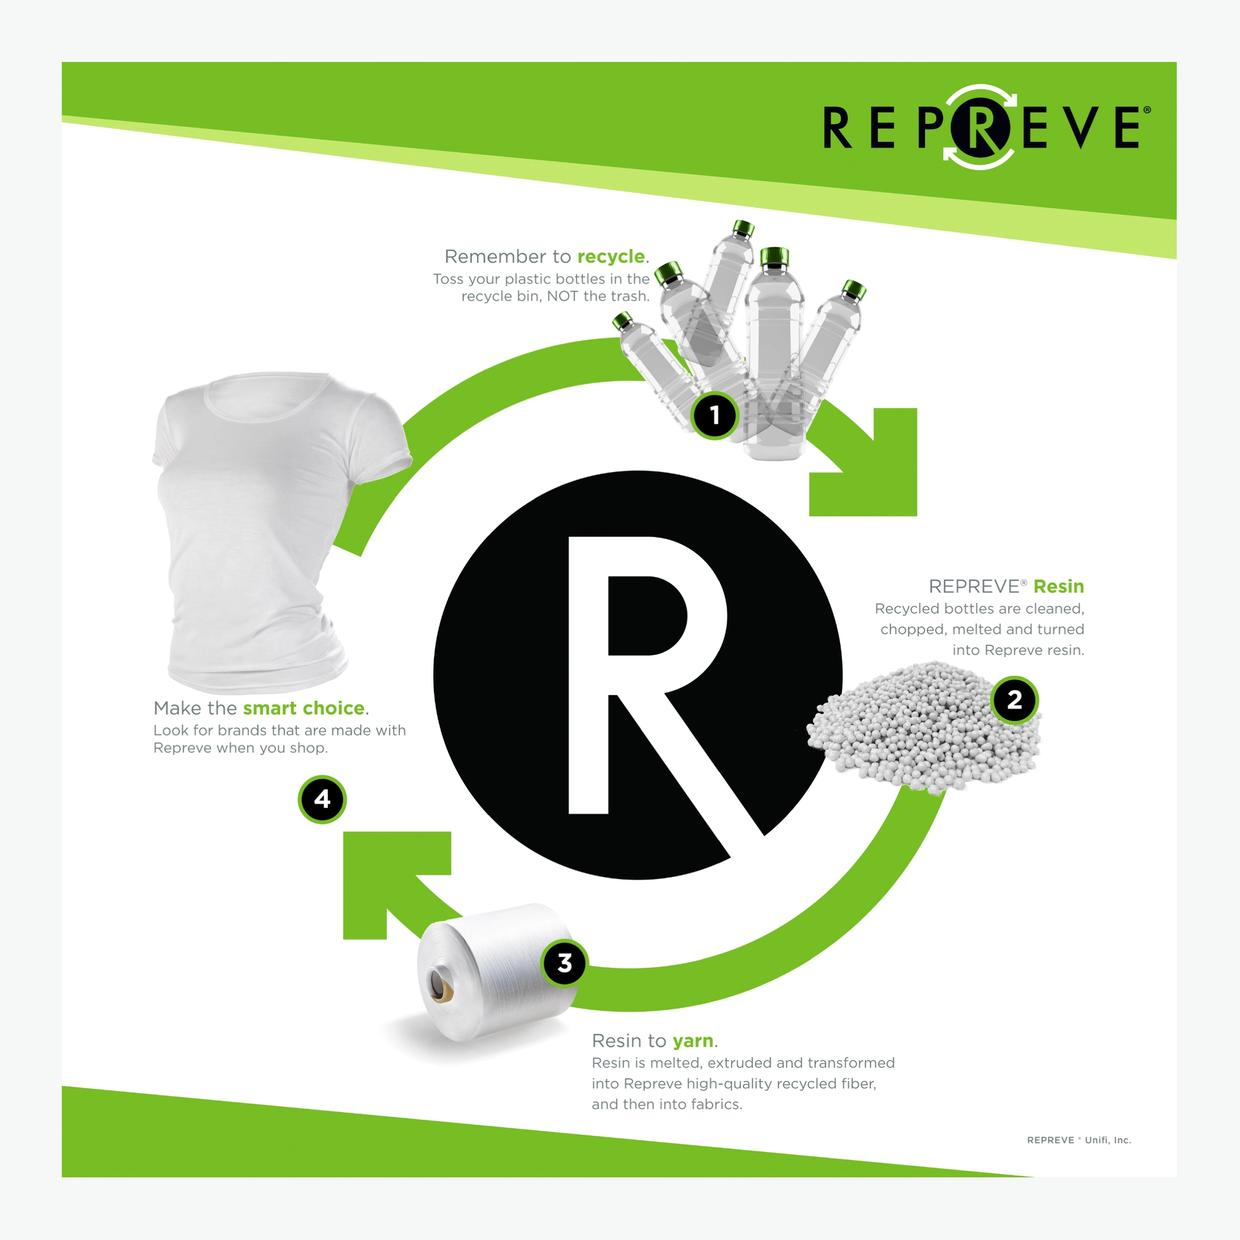 Repreve cycle